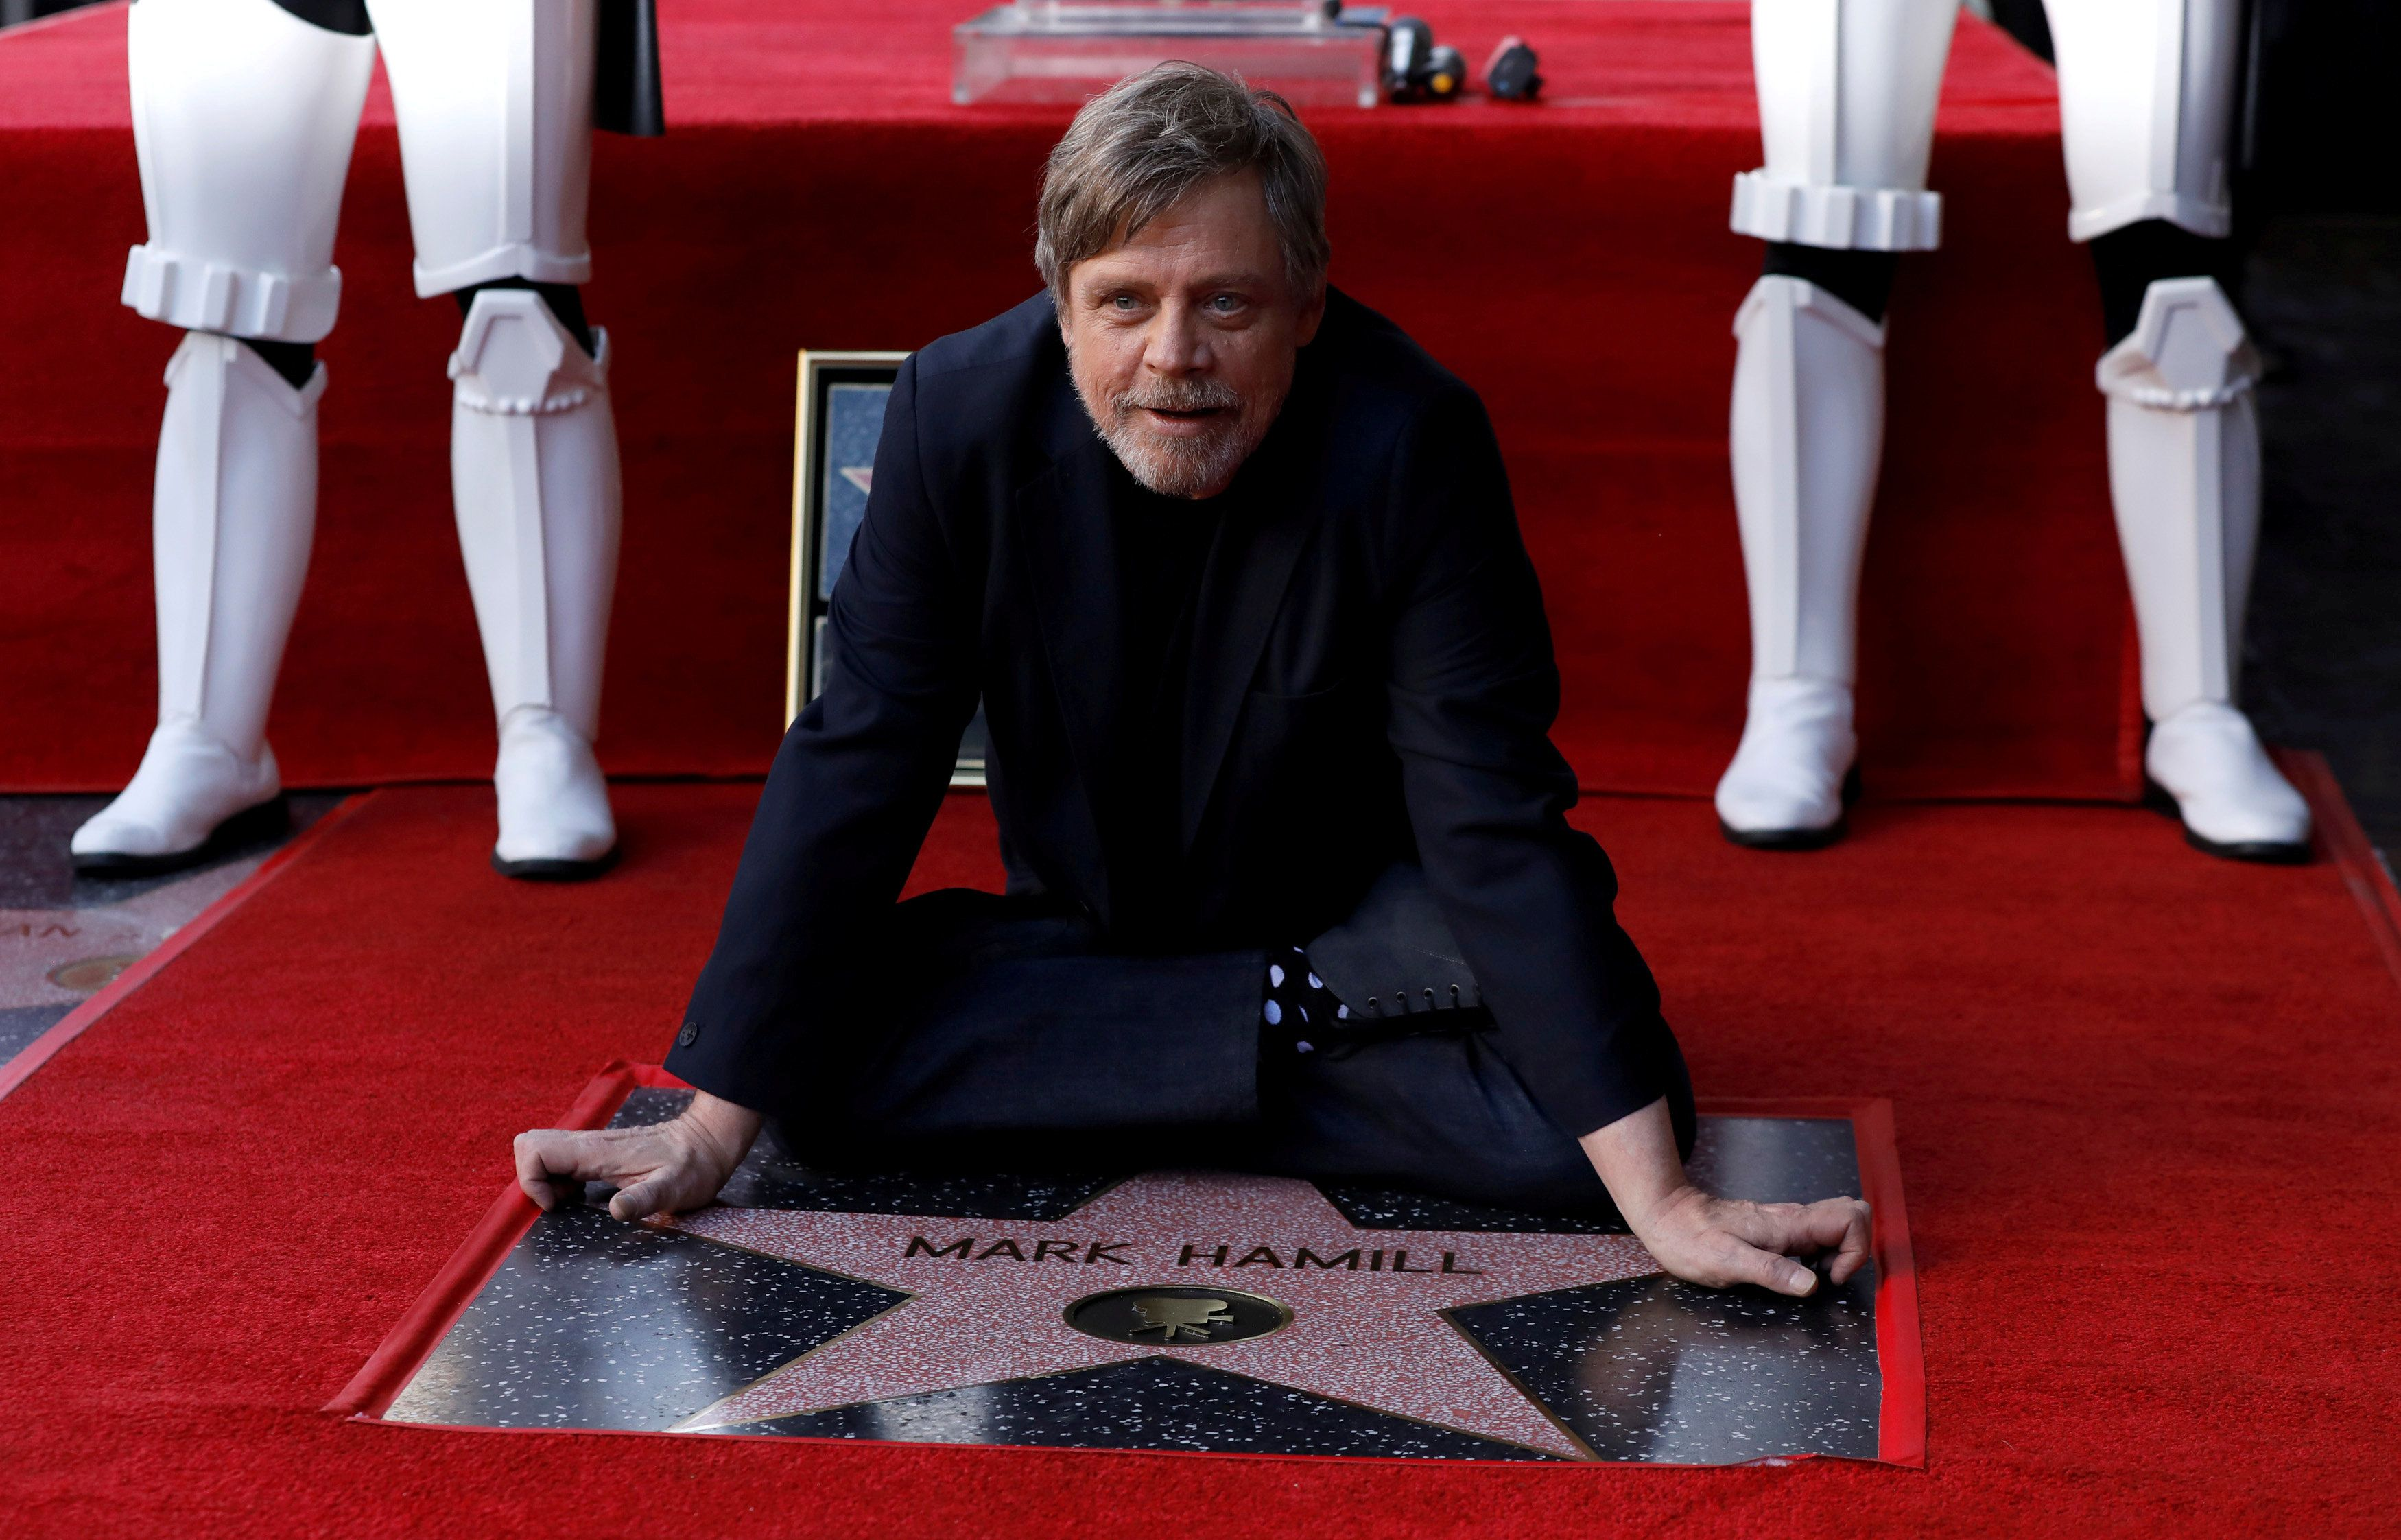 Luke Skywalker: The long lost prince?